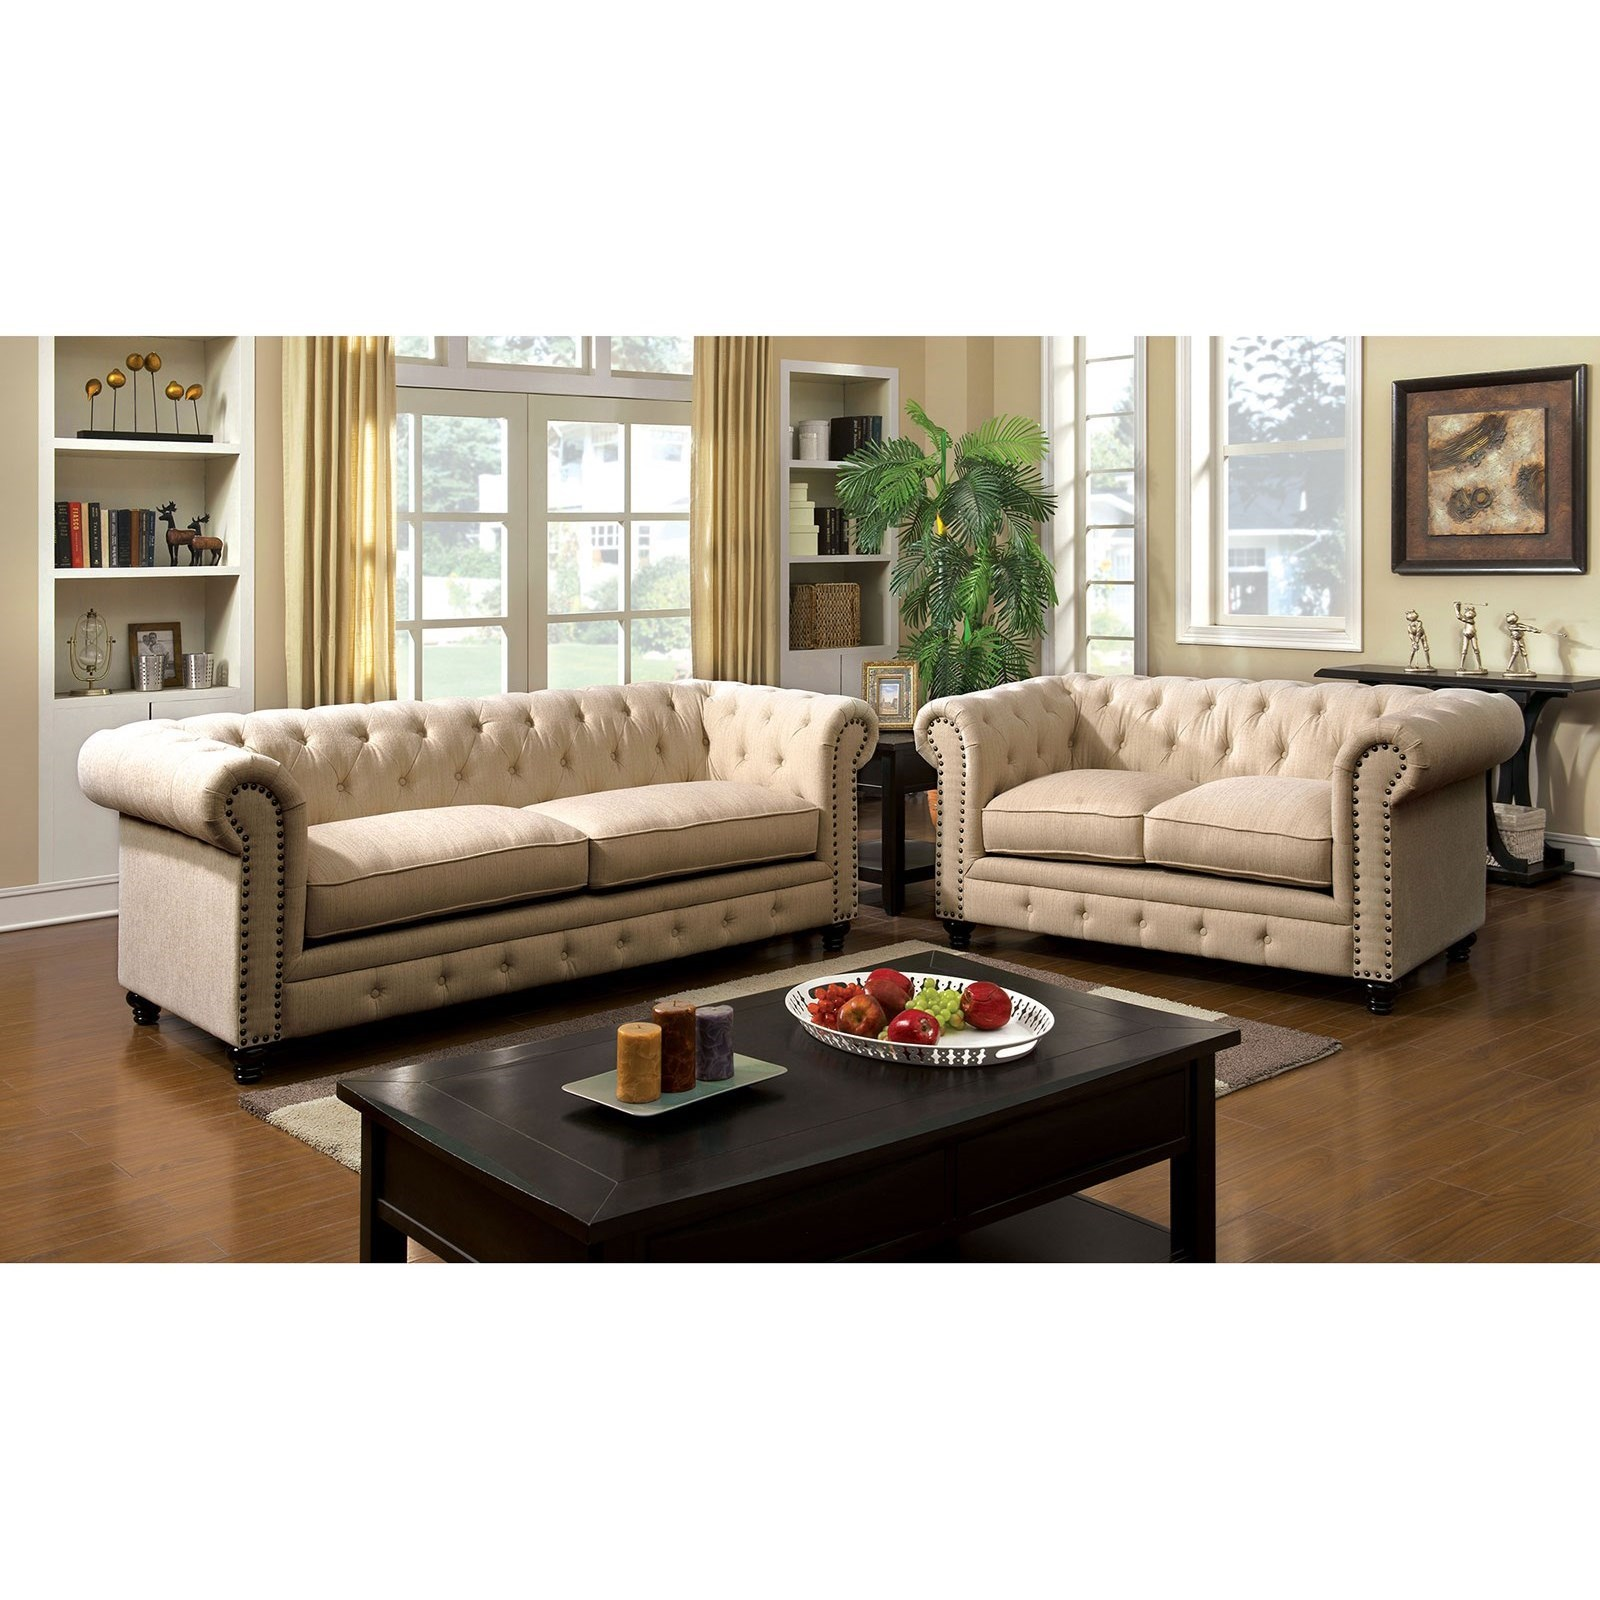 Stanford Stationary Living Room Group by Furniture of America at Corner Furniture